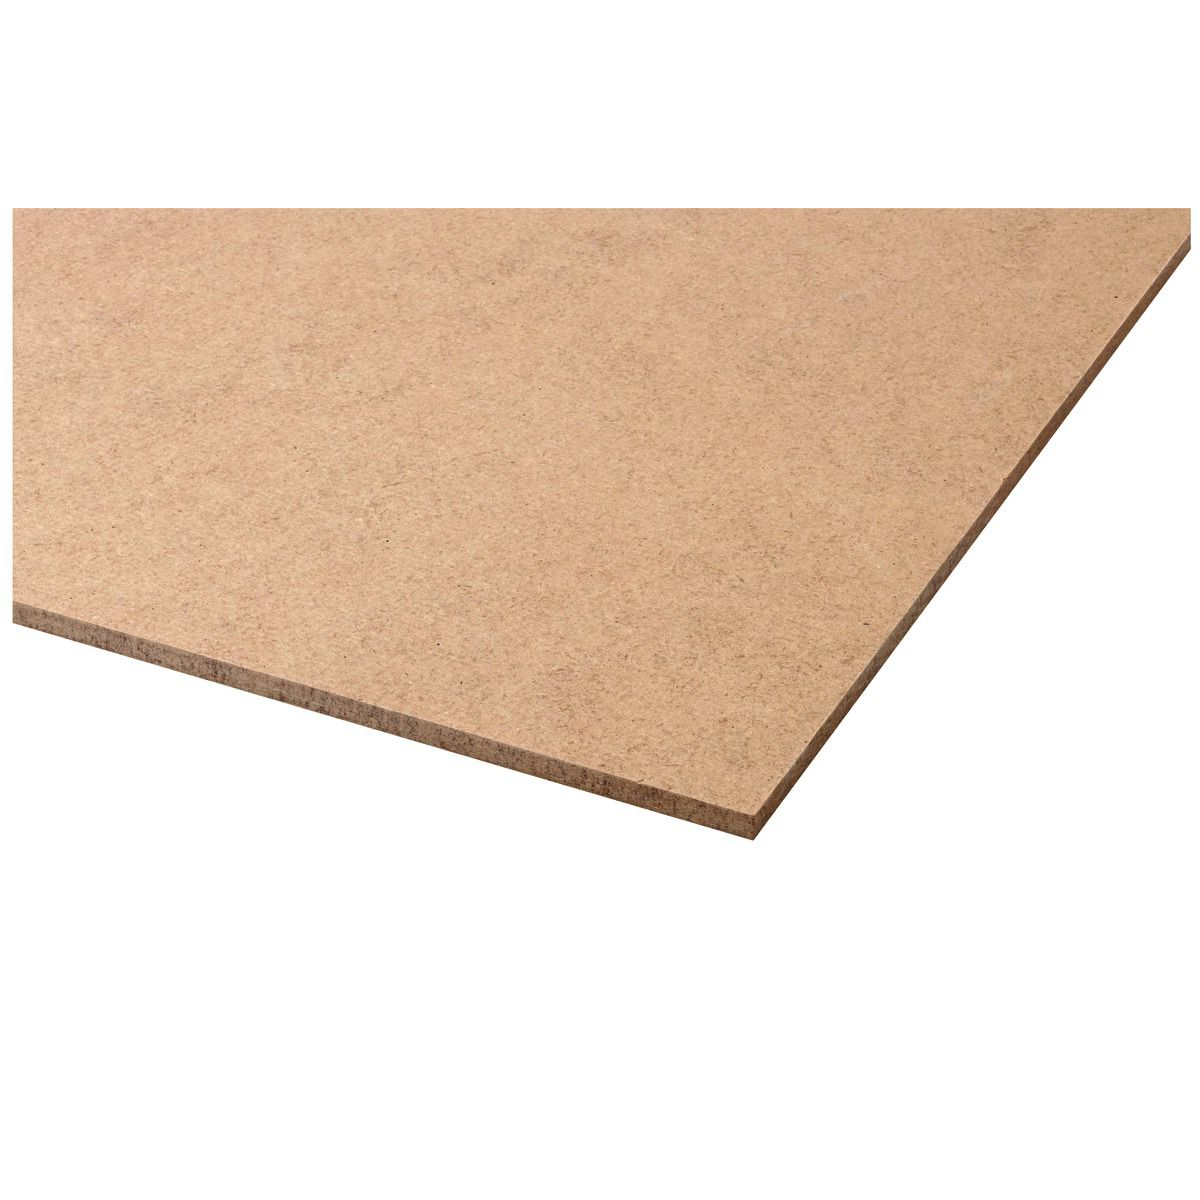 Compare cheap offers & prices of Wickes General Purpose Hardboard 3 x 1220 x 2440mm manufactured by Wickes